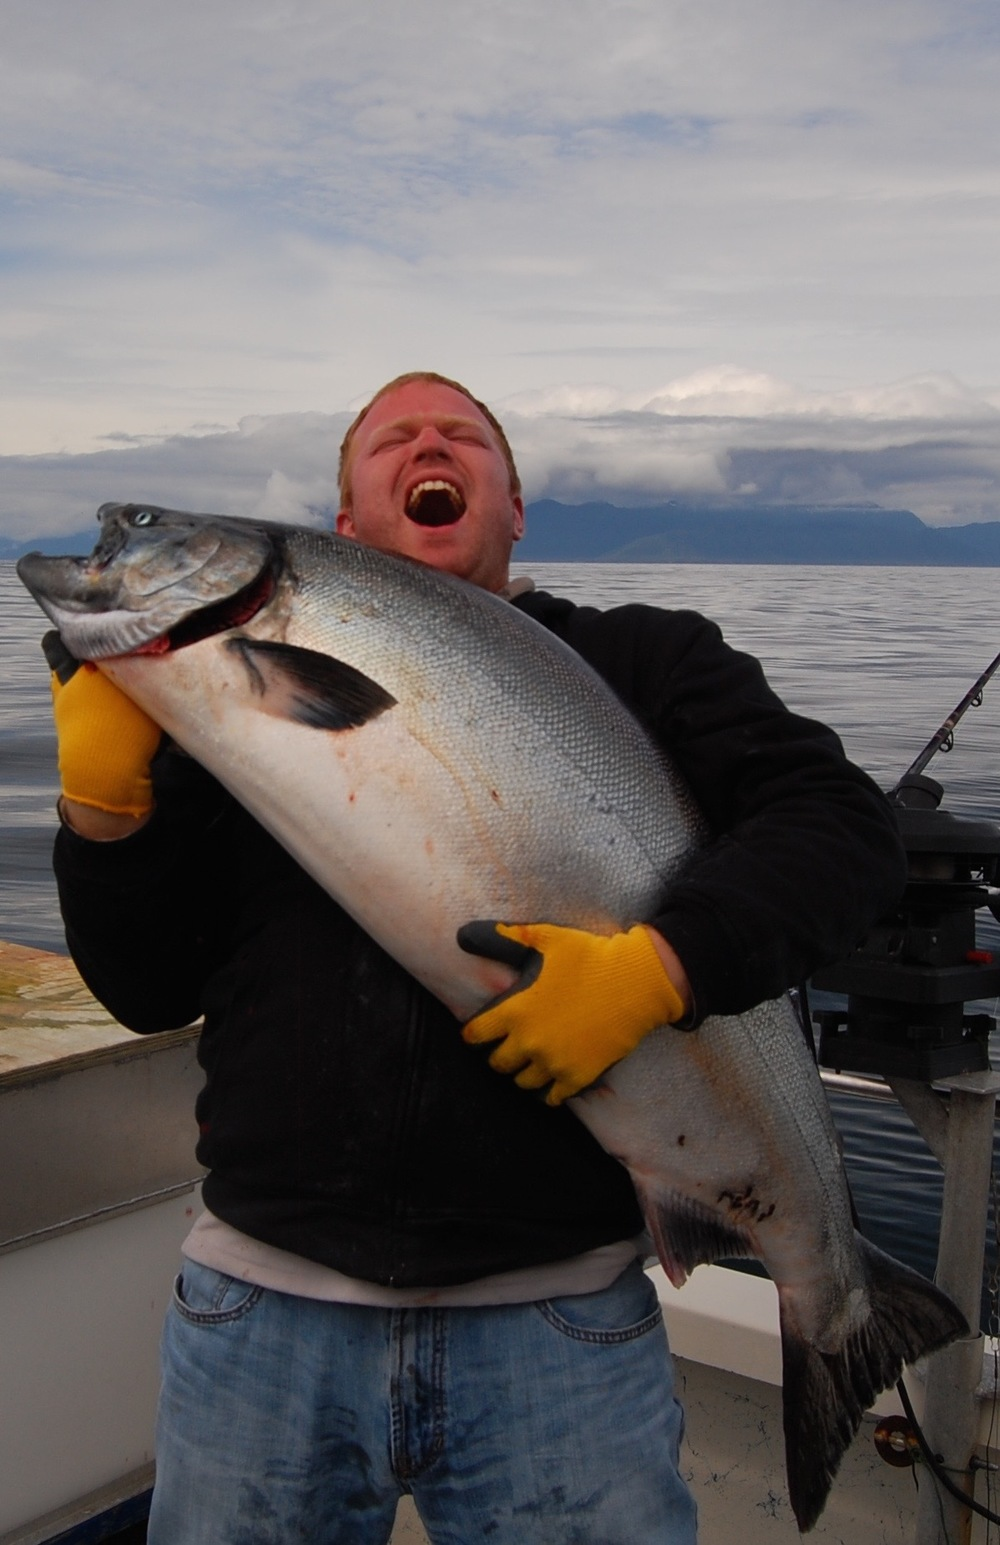 A guest cannot control his excitement after he caught this monster salmon!